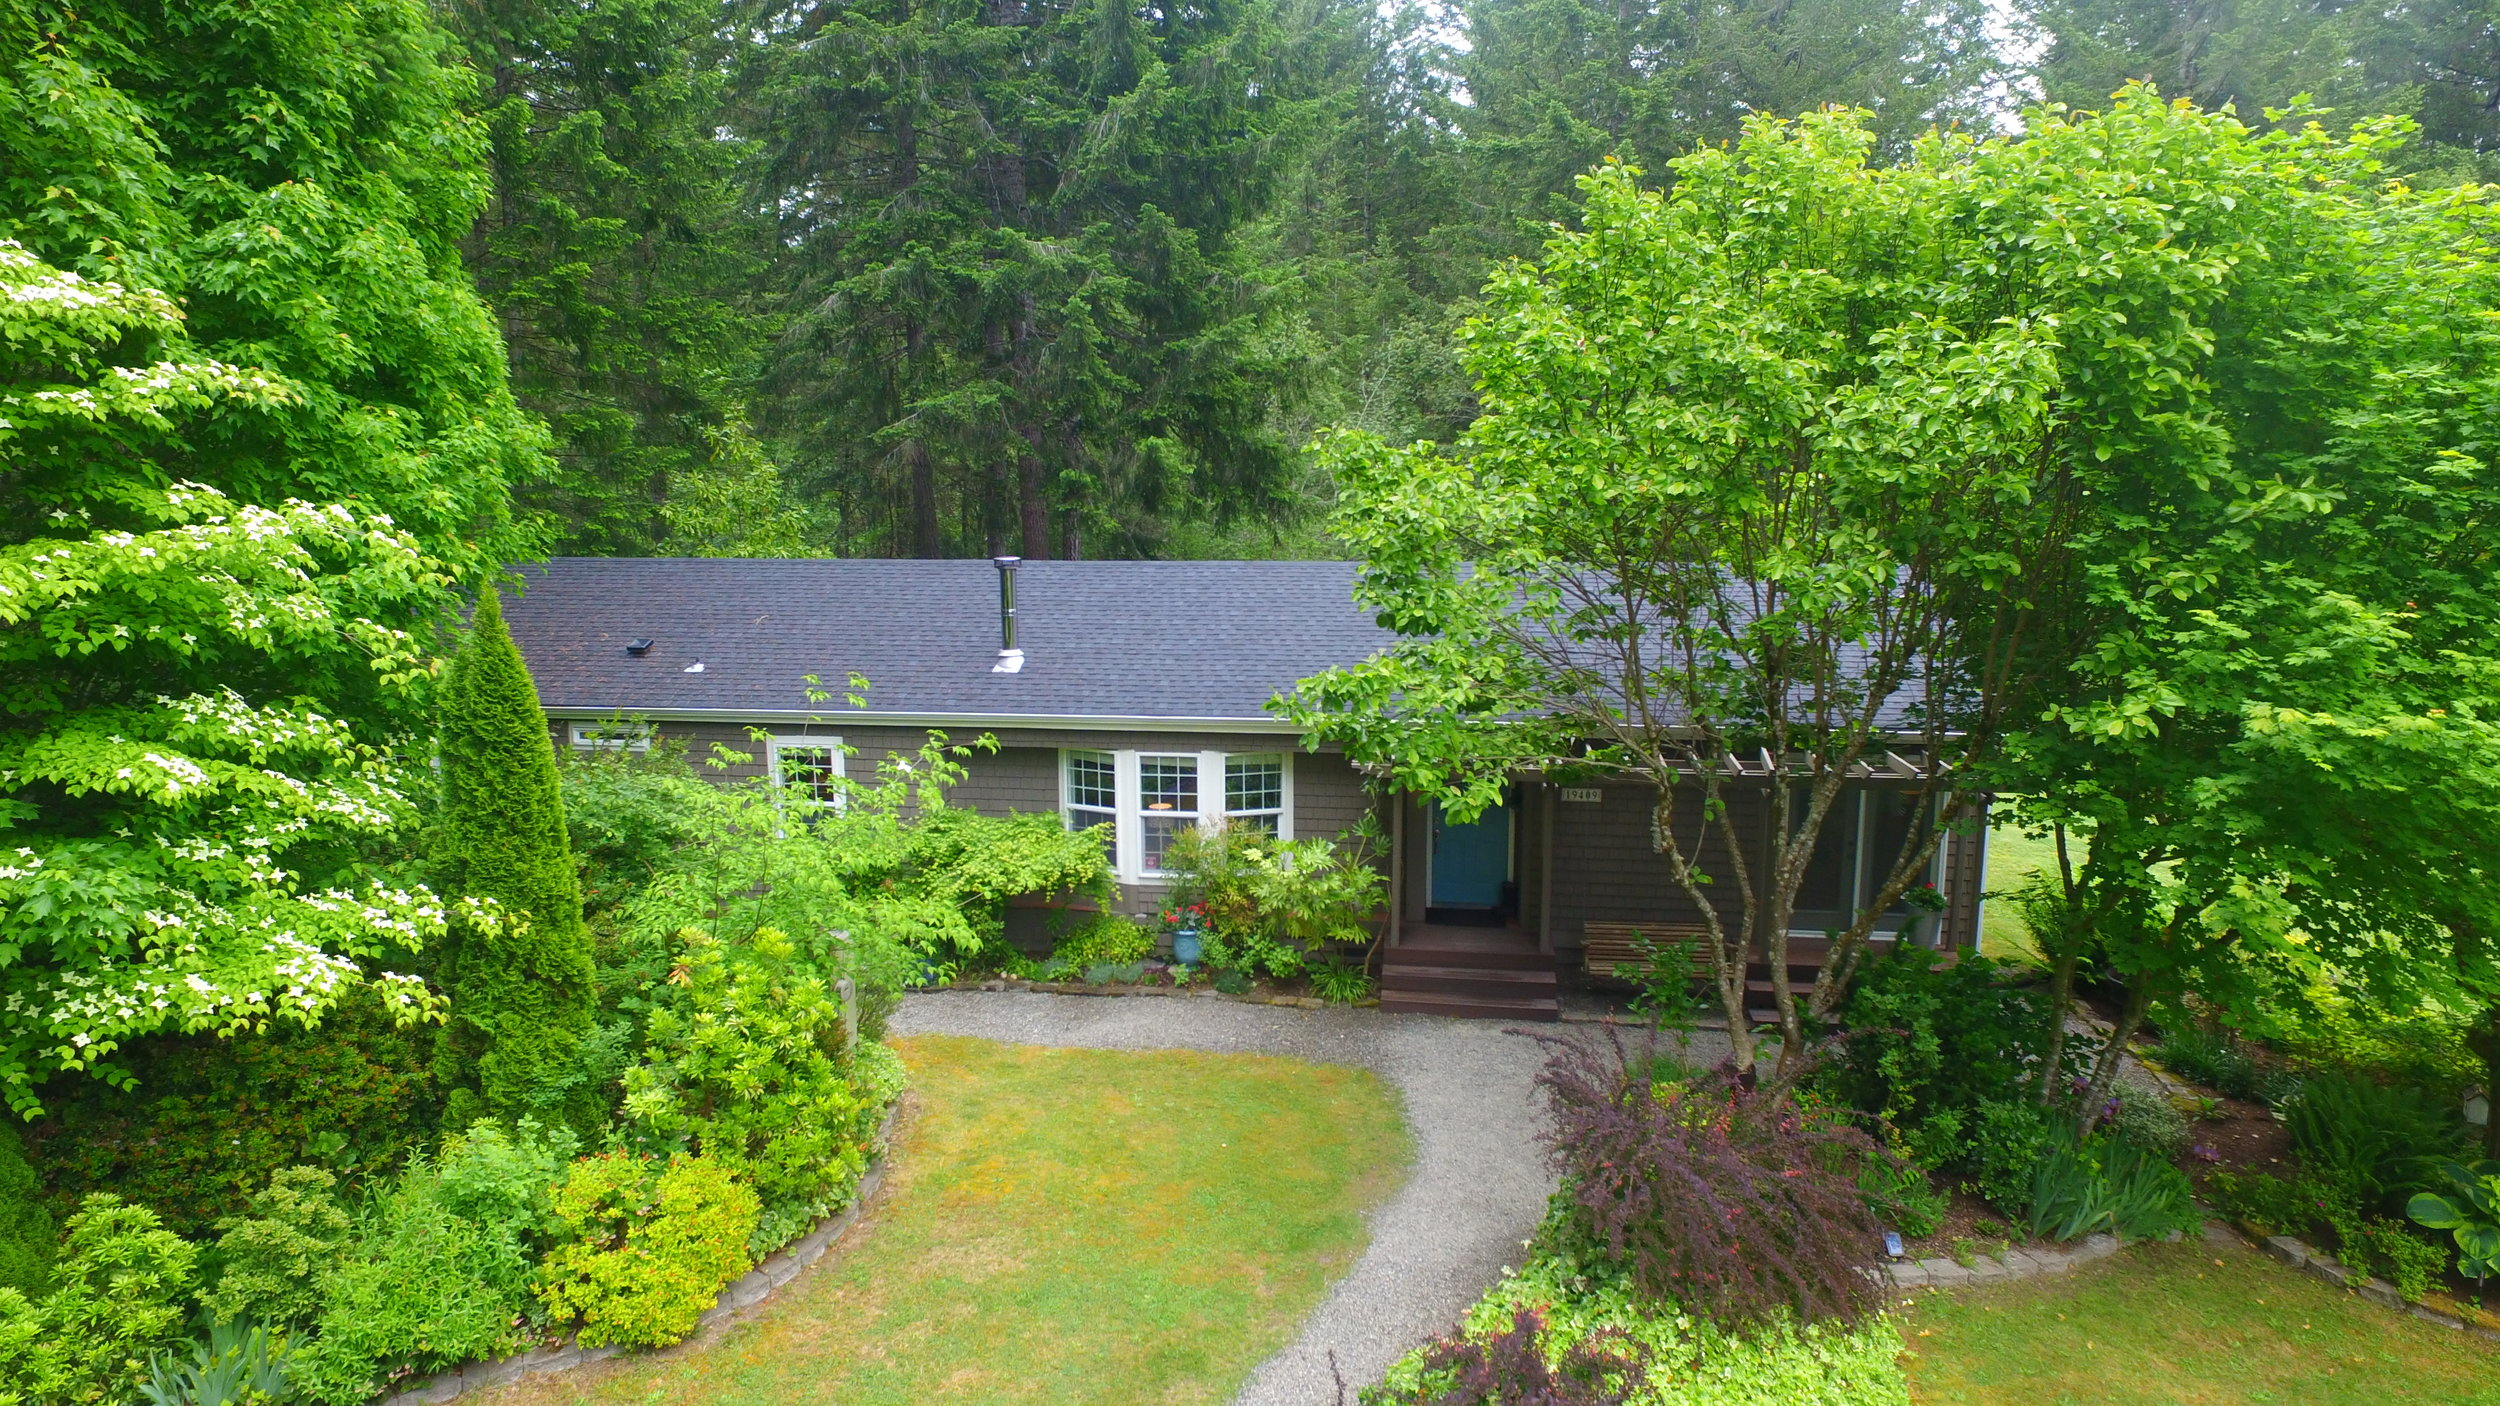 Meticulously maintained by the original homeowners, this cedar-shingled single-story manufactured home is surrounded by gravel paths and landscaped beds with acres of woods just beyond. Notice the beautiful landscaping trees such as dogwood and Japanese maple planted to compliment the native woodland. You'll find hostas, hydrangeas, lilac, and so many more shrubs and flowers in this carefully tended garden.